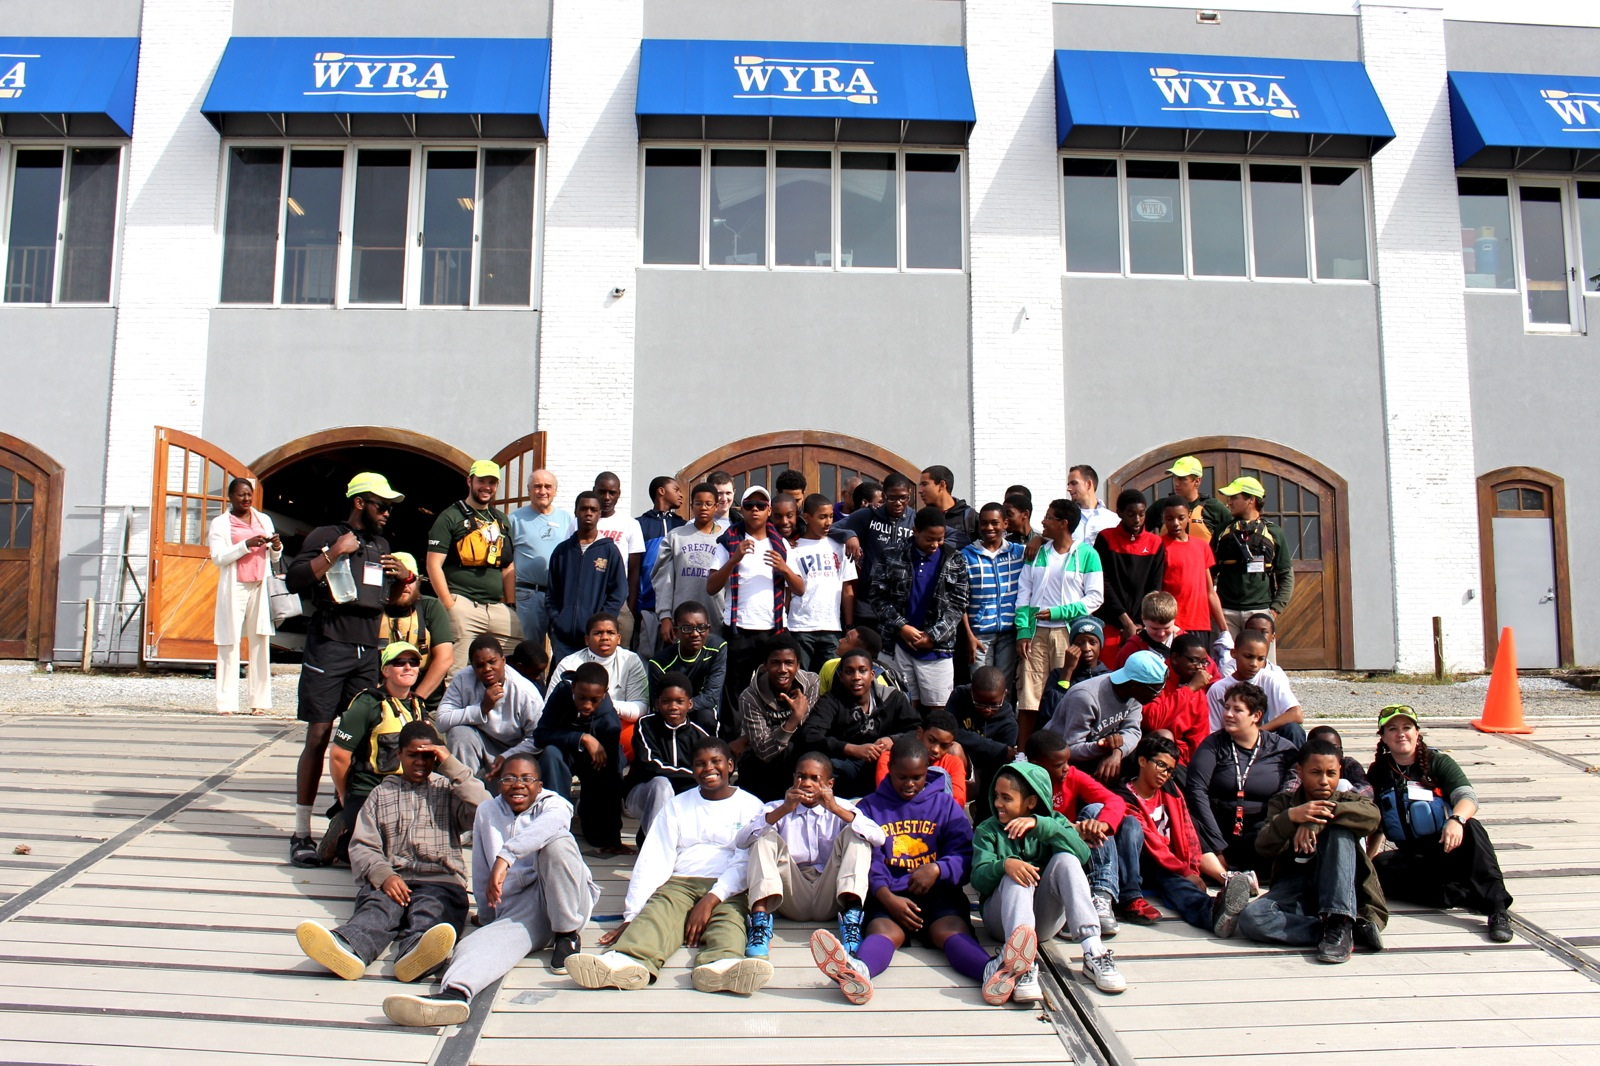 group photo of participants and staff members outside of the WYRA building in Wilmington